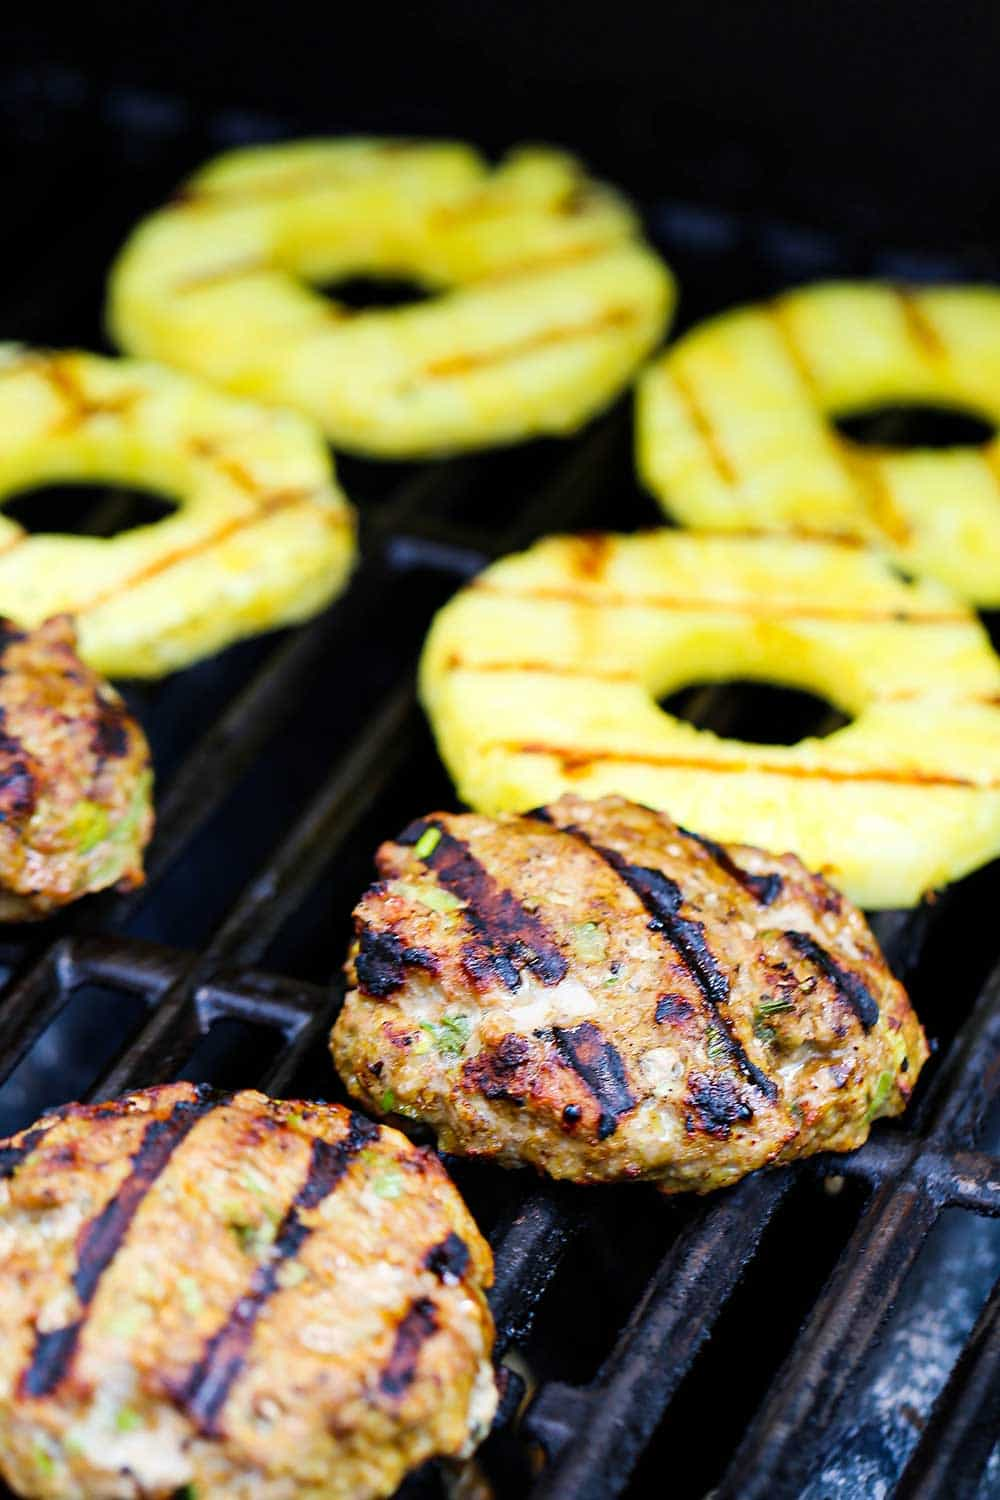 Curry turkey burgers on a gas grill next to 4 slices of fresh pineapple all with grill marks on their surfaces.